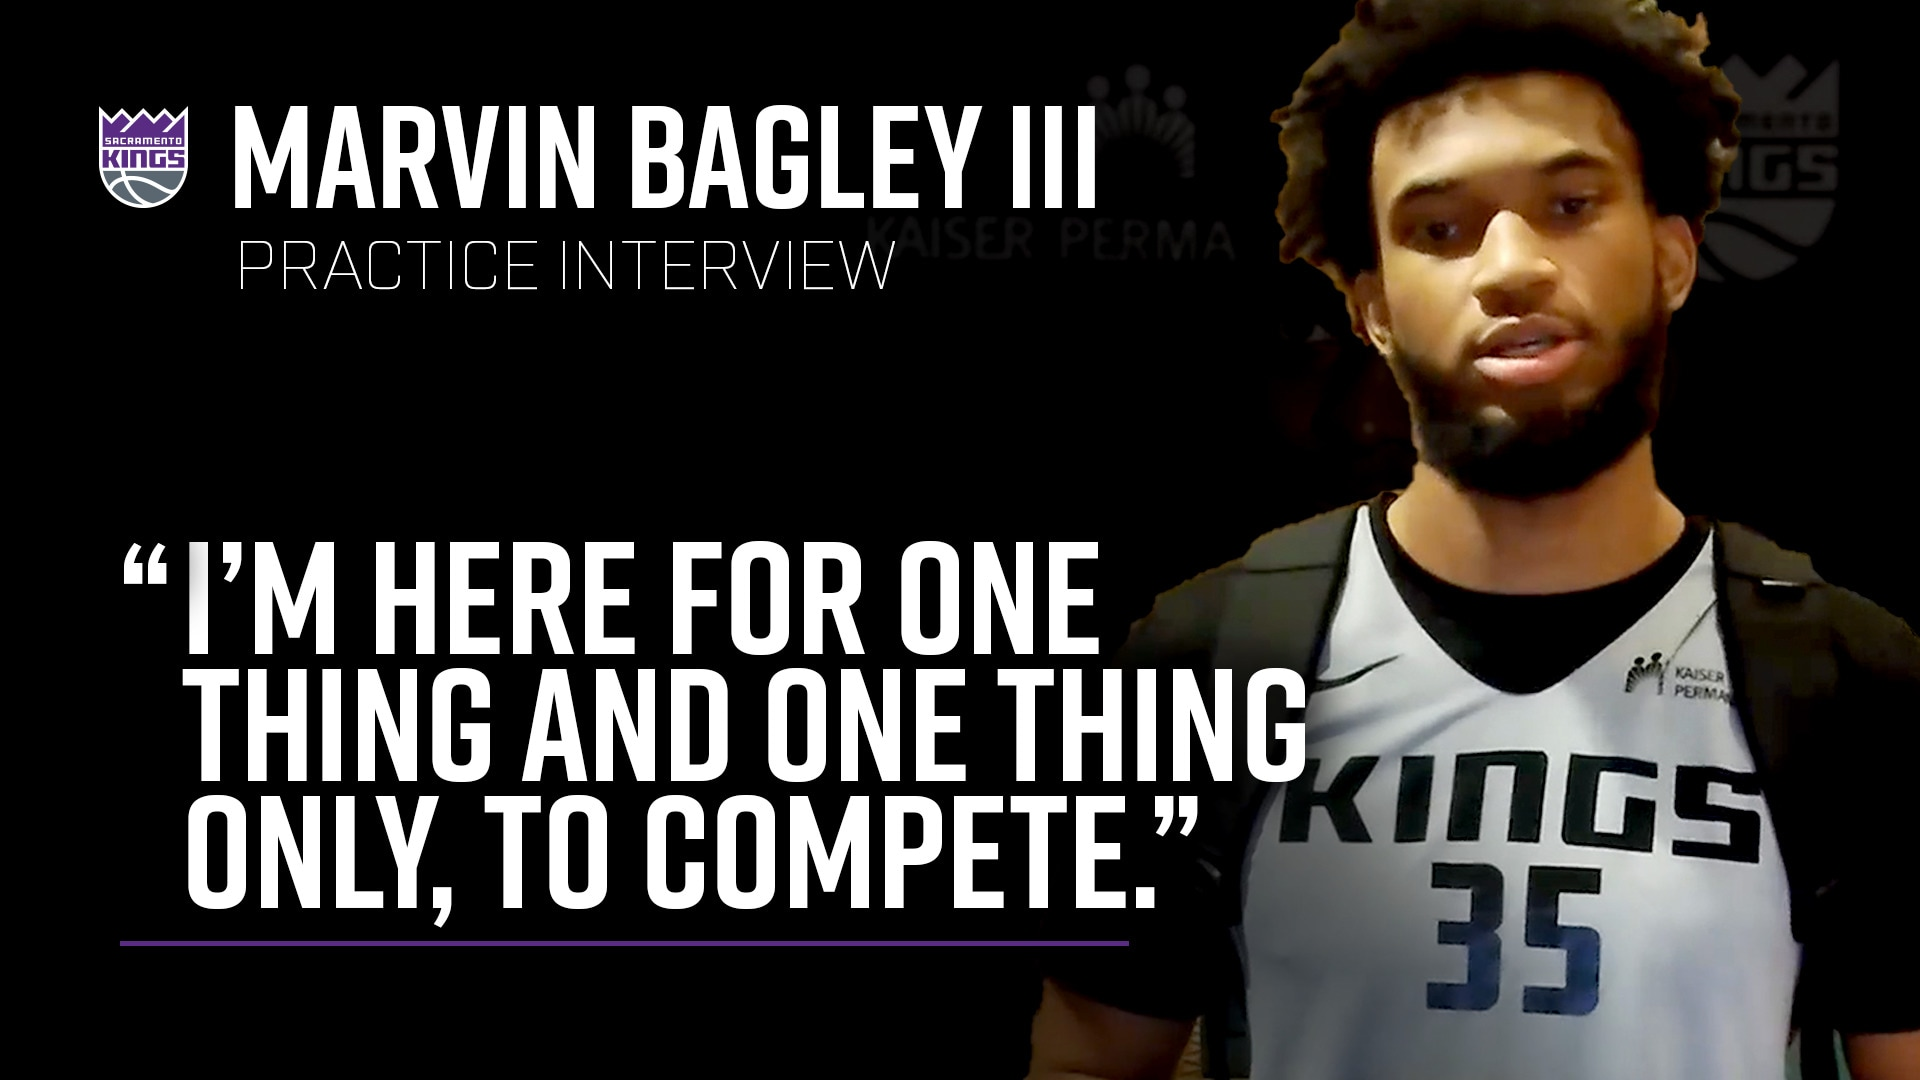 Marvin Bagley III is Ready to Compete in Orlando | Practice Interview 7.11.2020